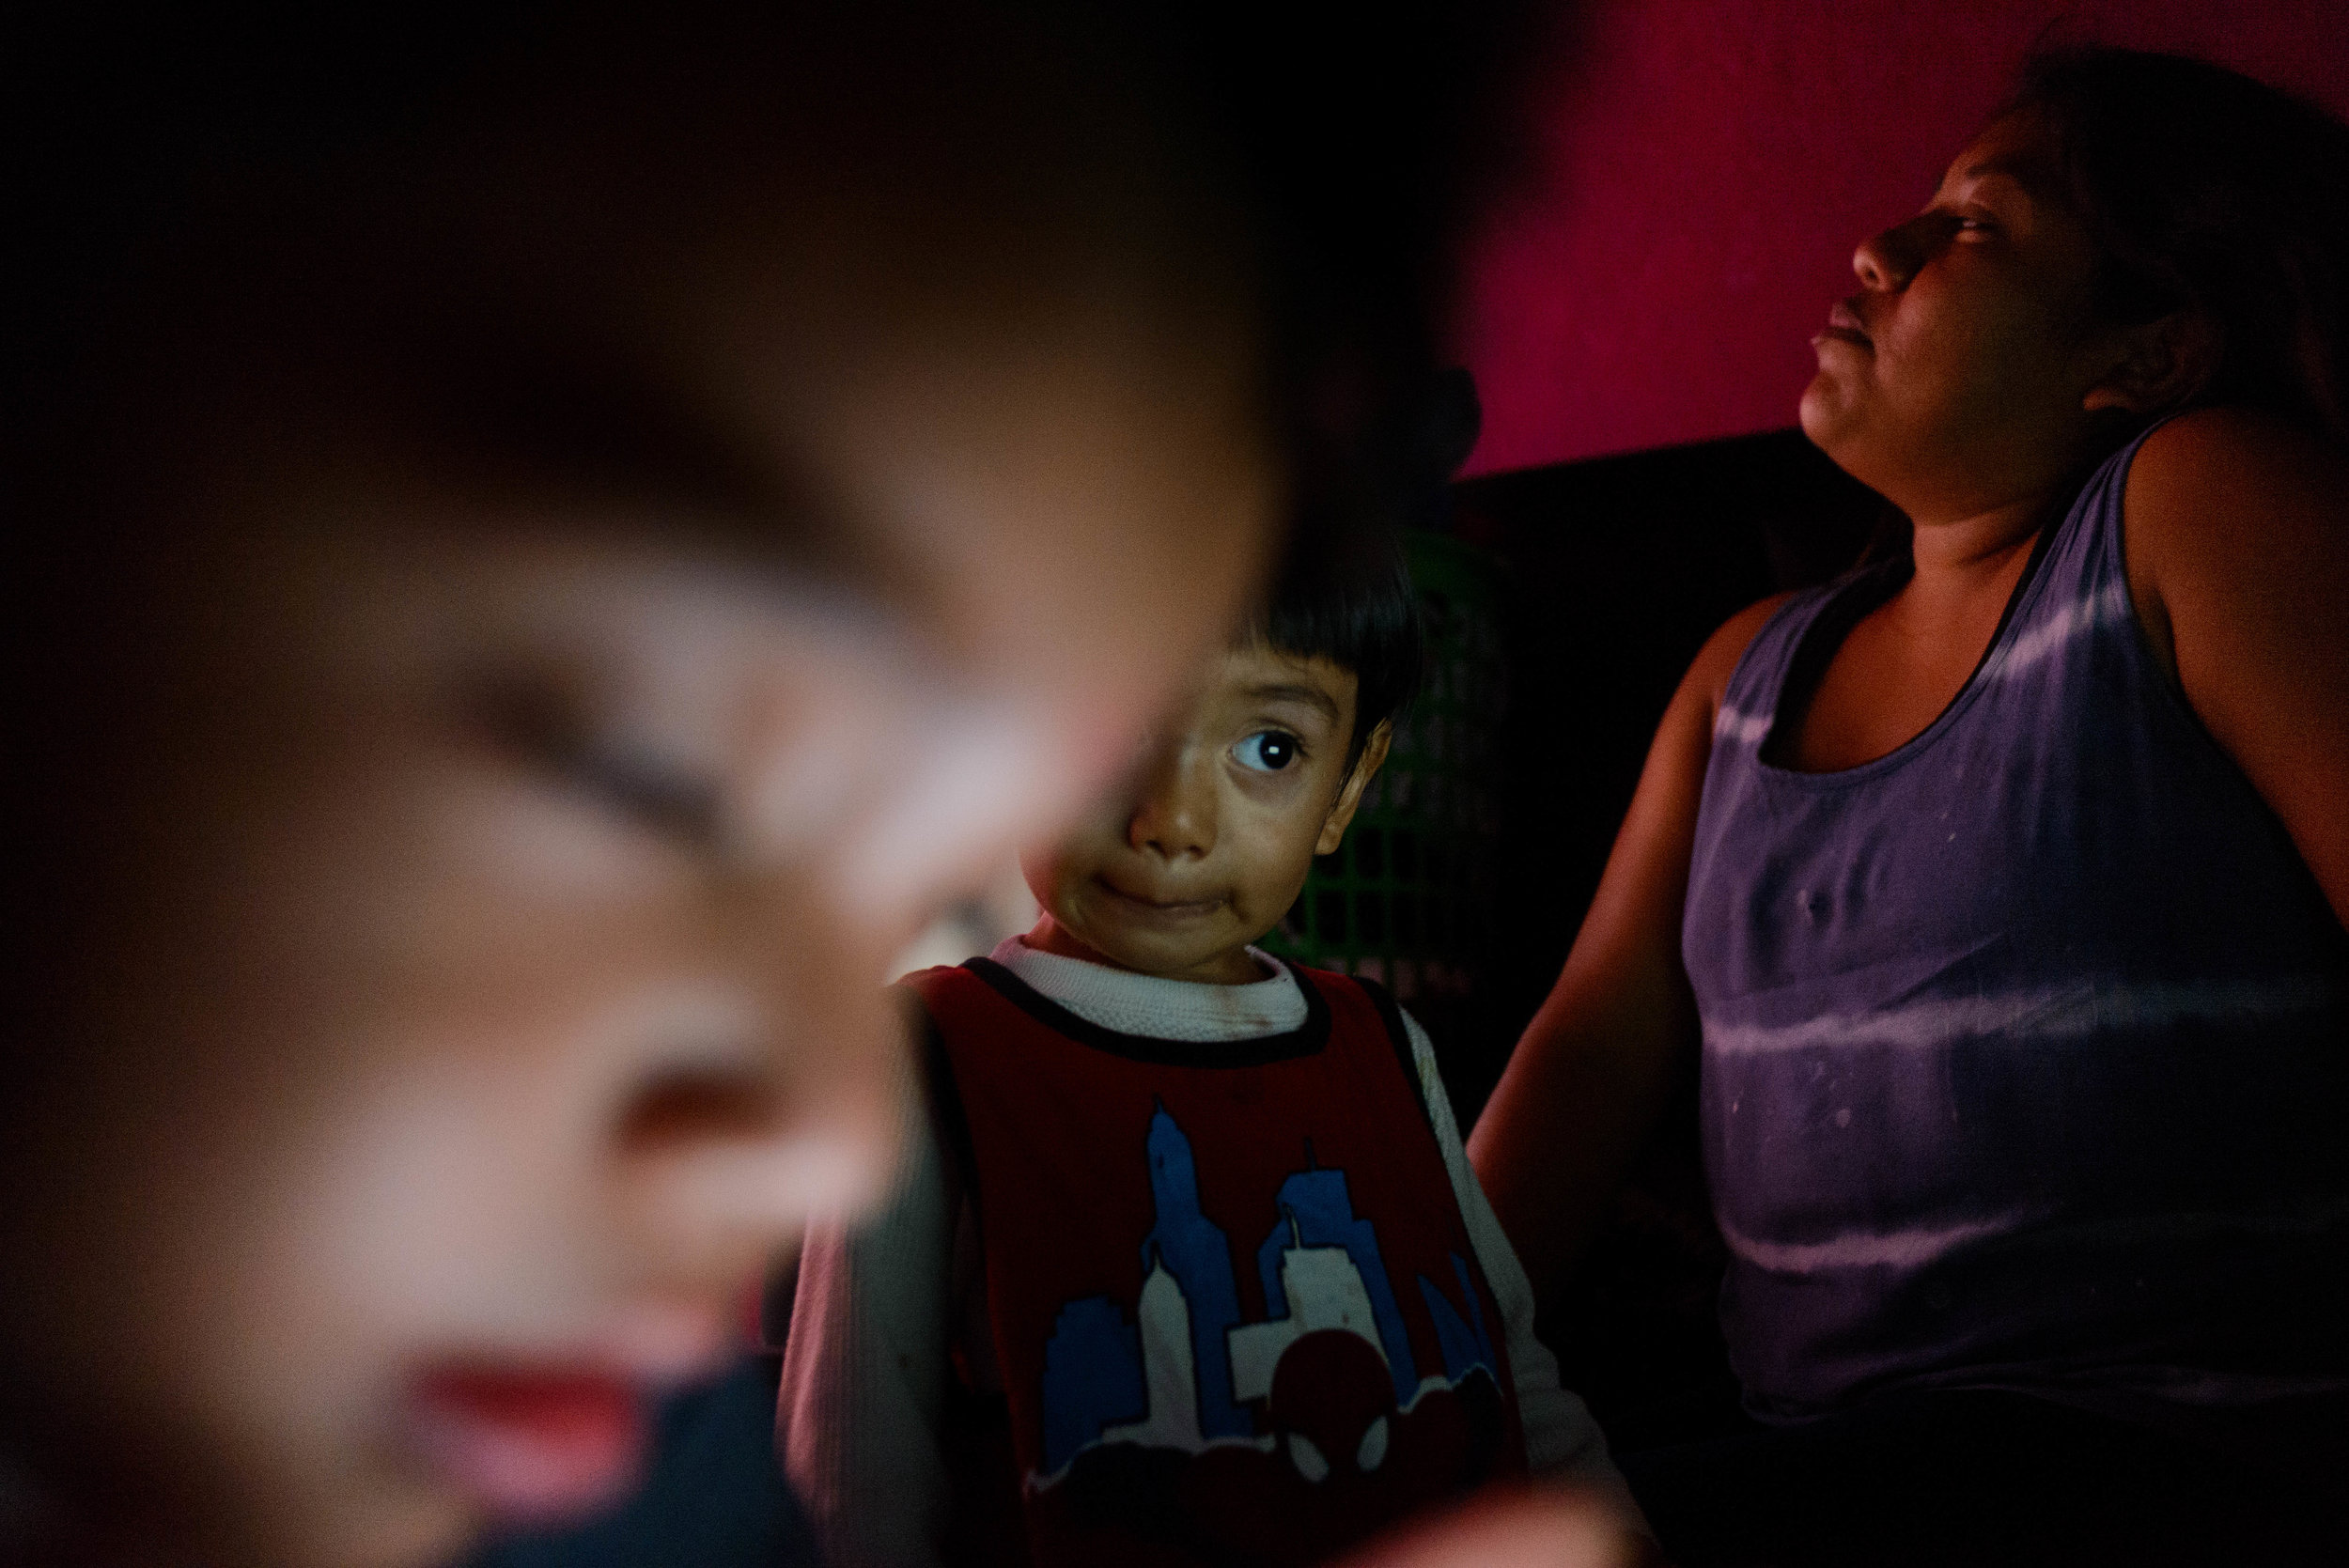 Josefina relaxes while her son and nephew entertain themselves with music videos on a laptop.